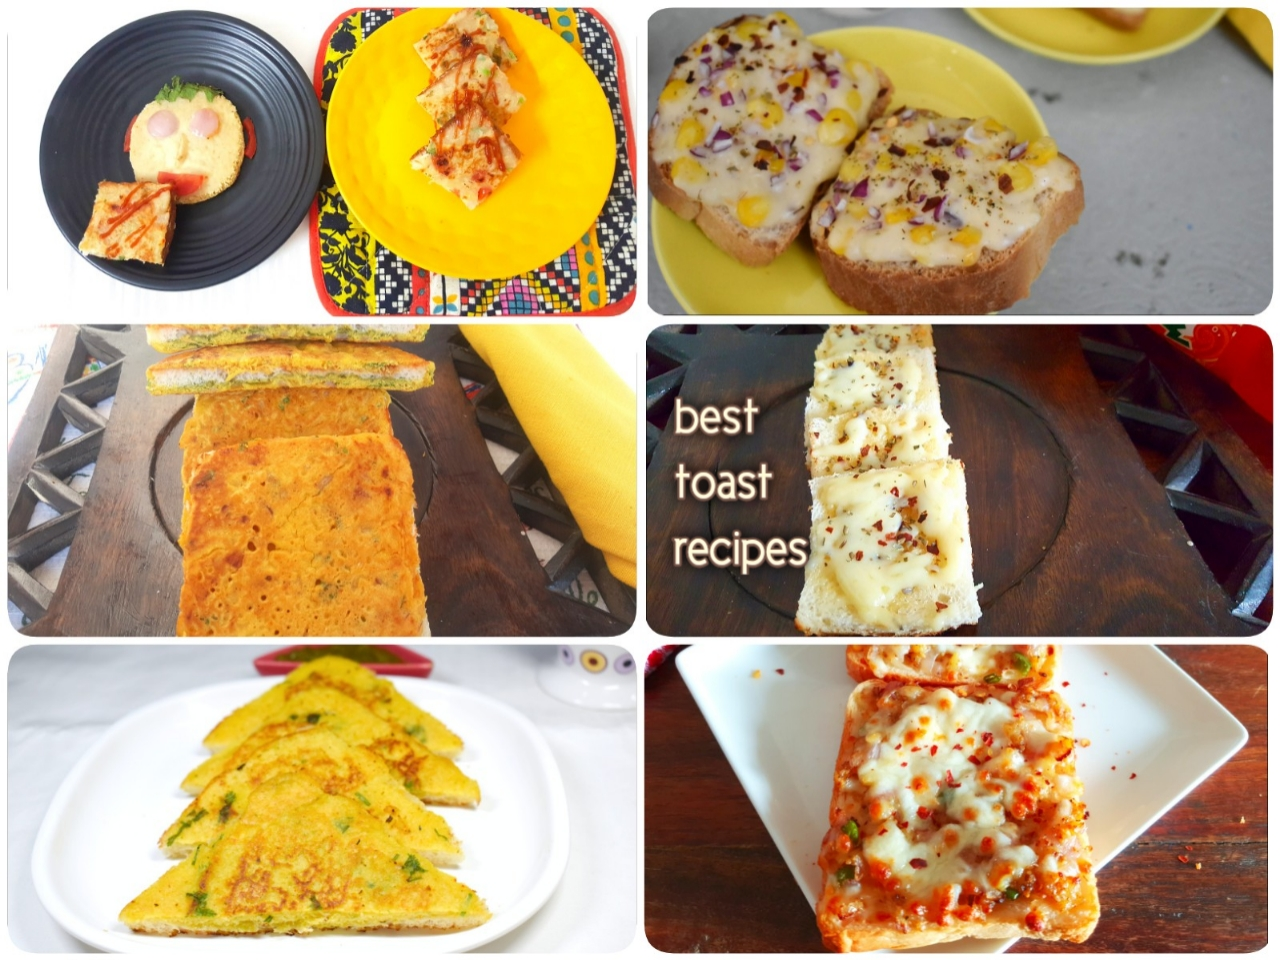 best toast recipes